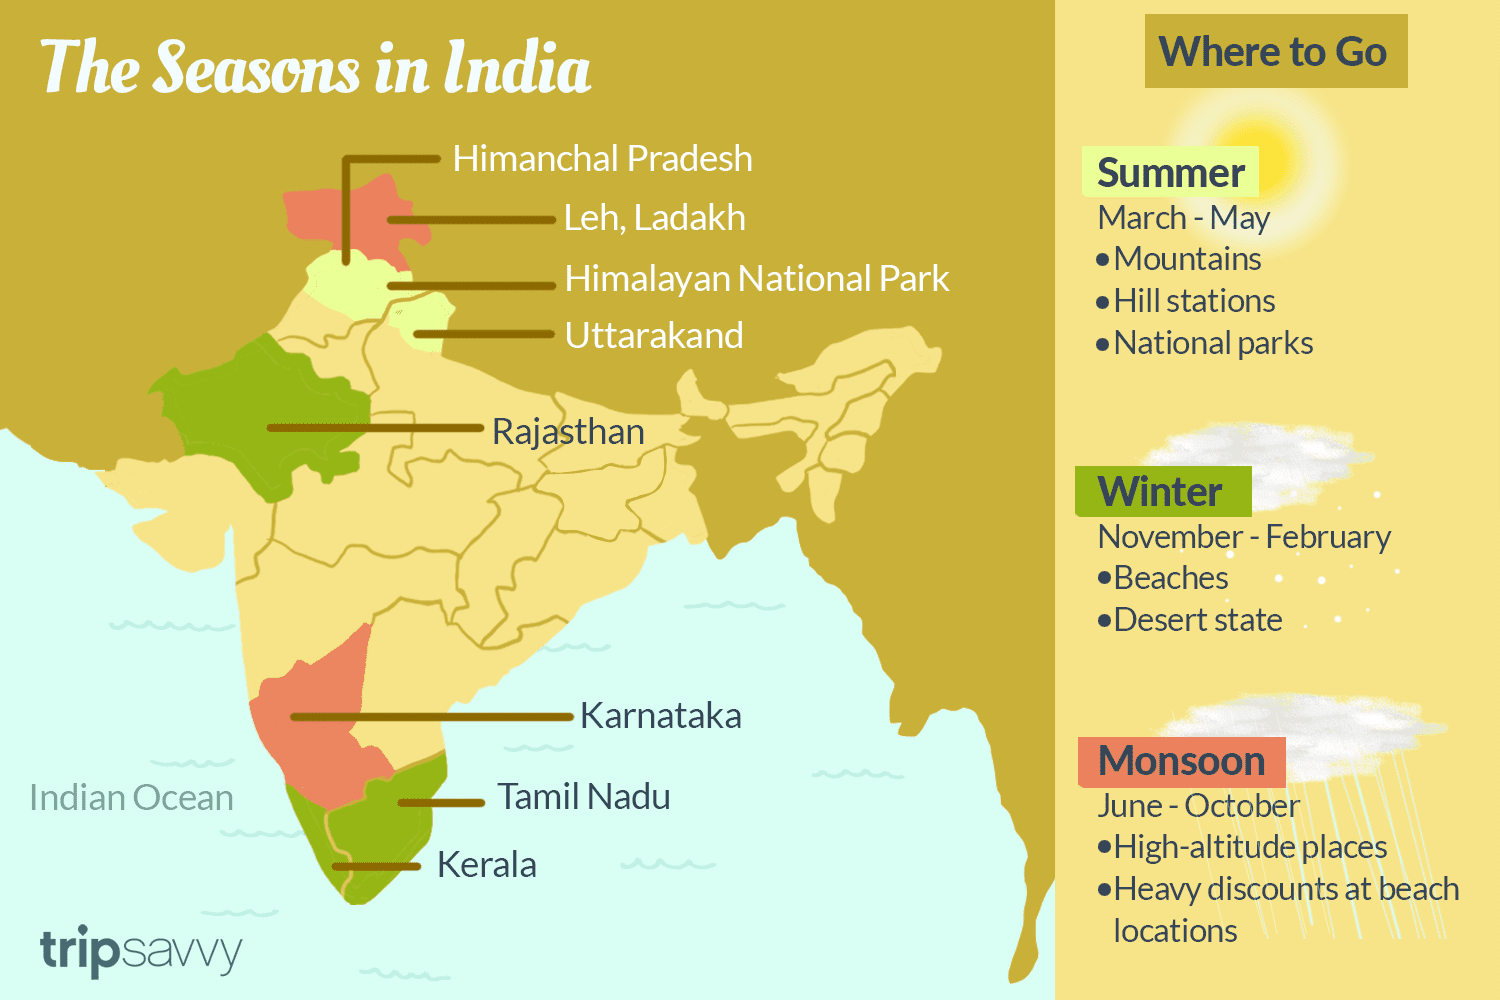 A Guide to Climate, Weather, and Seasonality in India